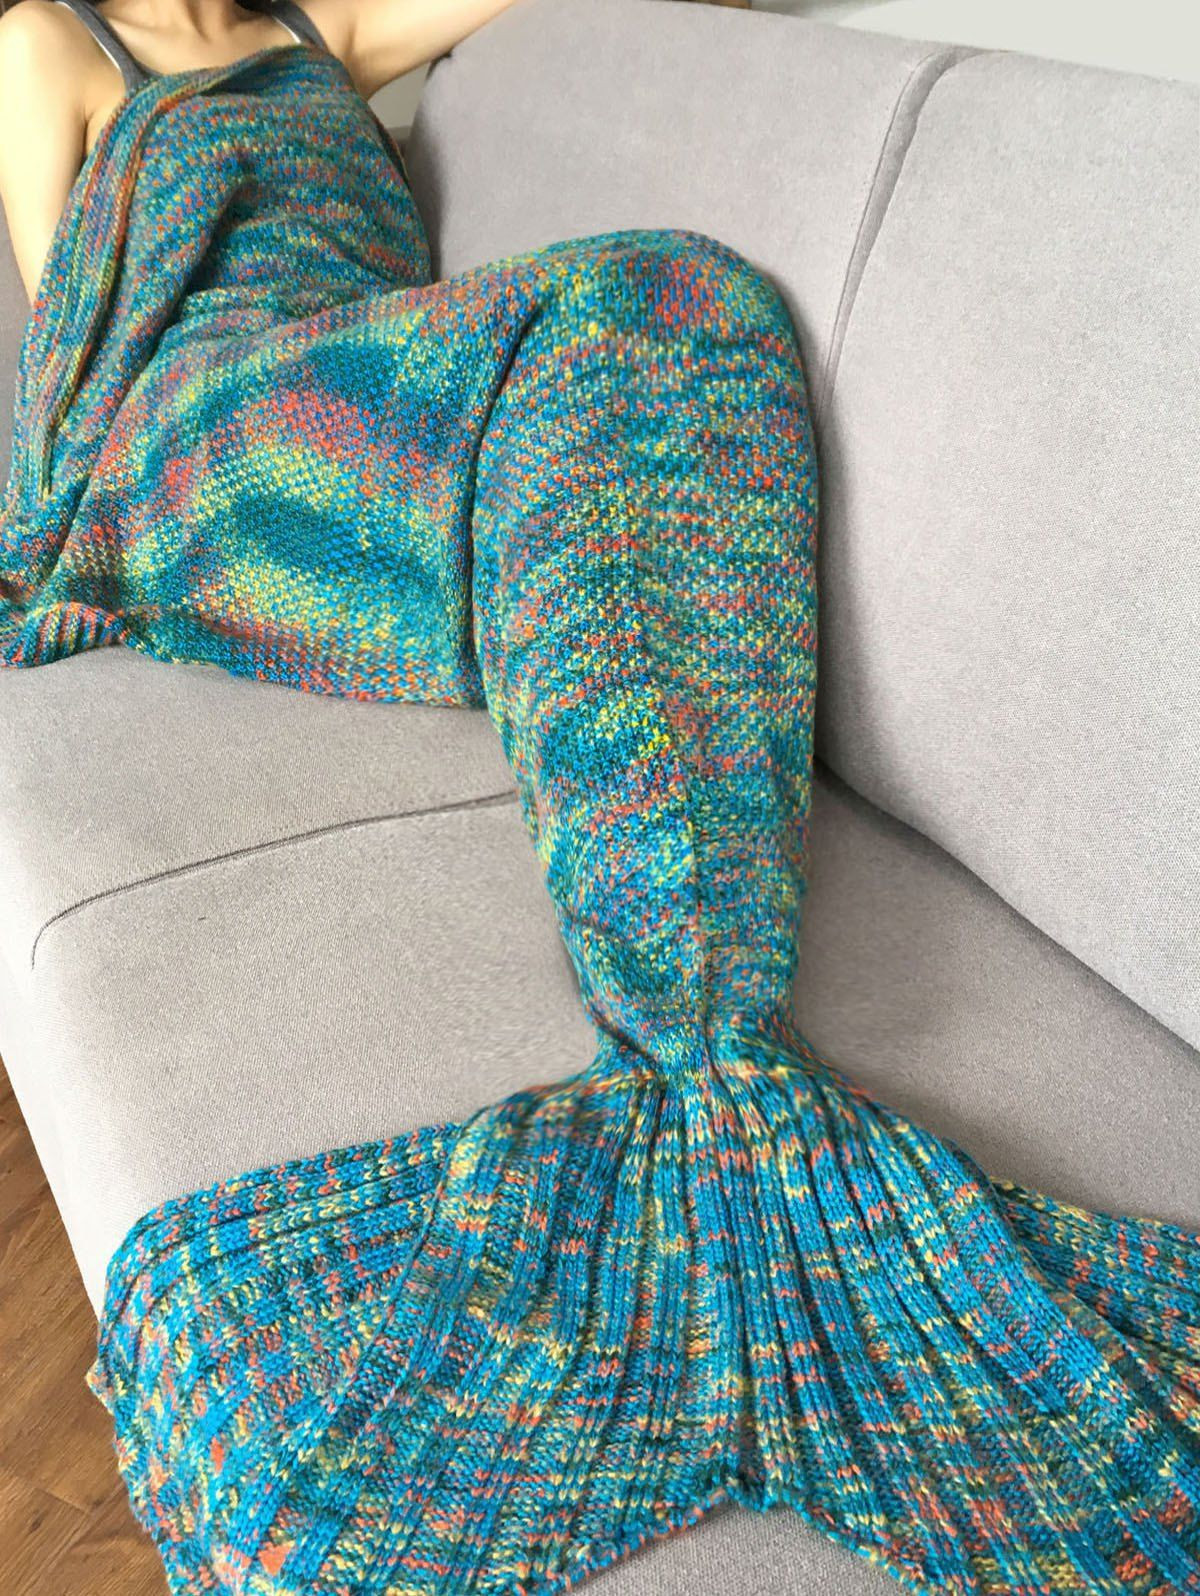 Lovely Stylish Crochet Knitted Super soft Mermaid Tail Shape Mermaid Tail Knitting Pattern Of Awesome 40 Pictures Mermaid Tail Knitting Pattern